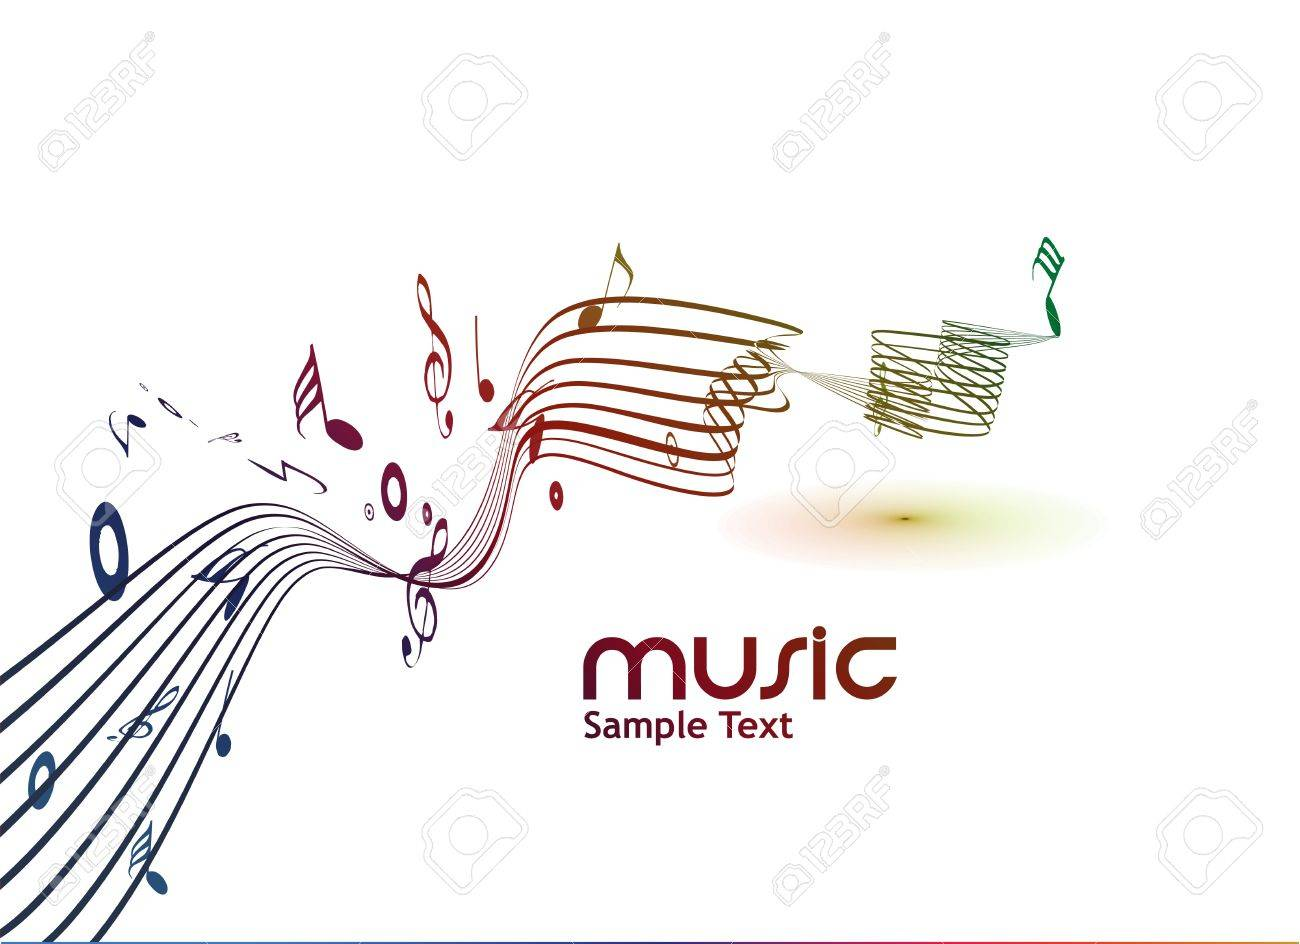 abstract musical notes background for design use. Stock Vector - 9543046